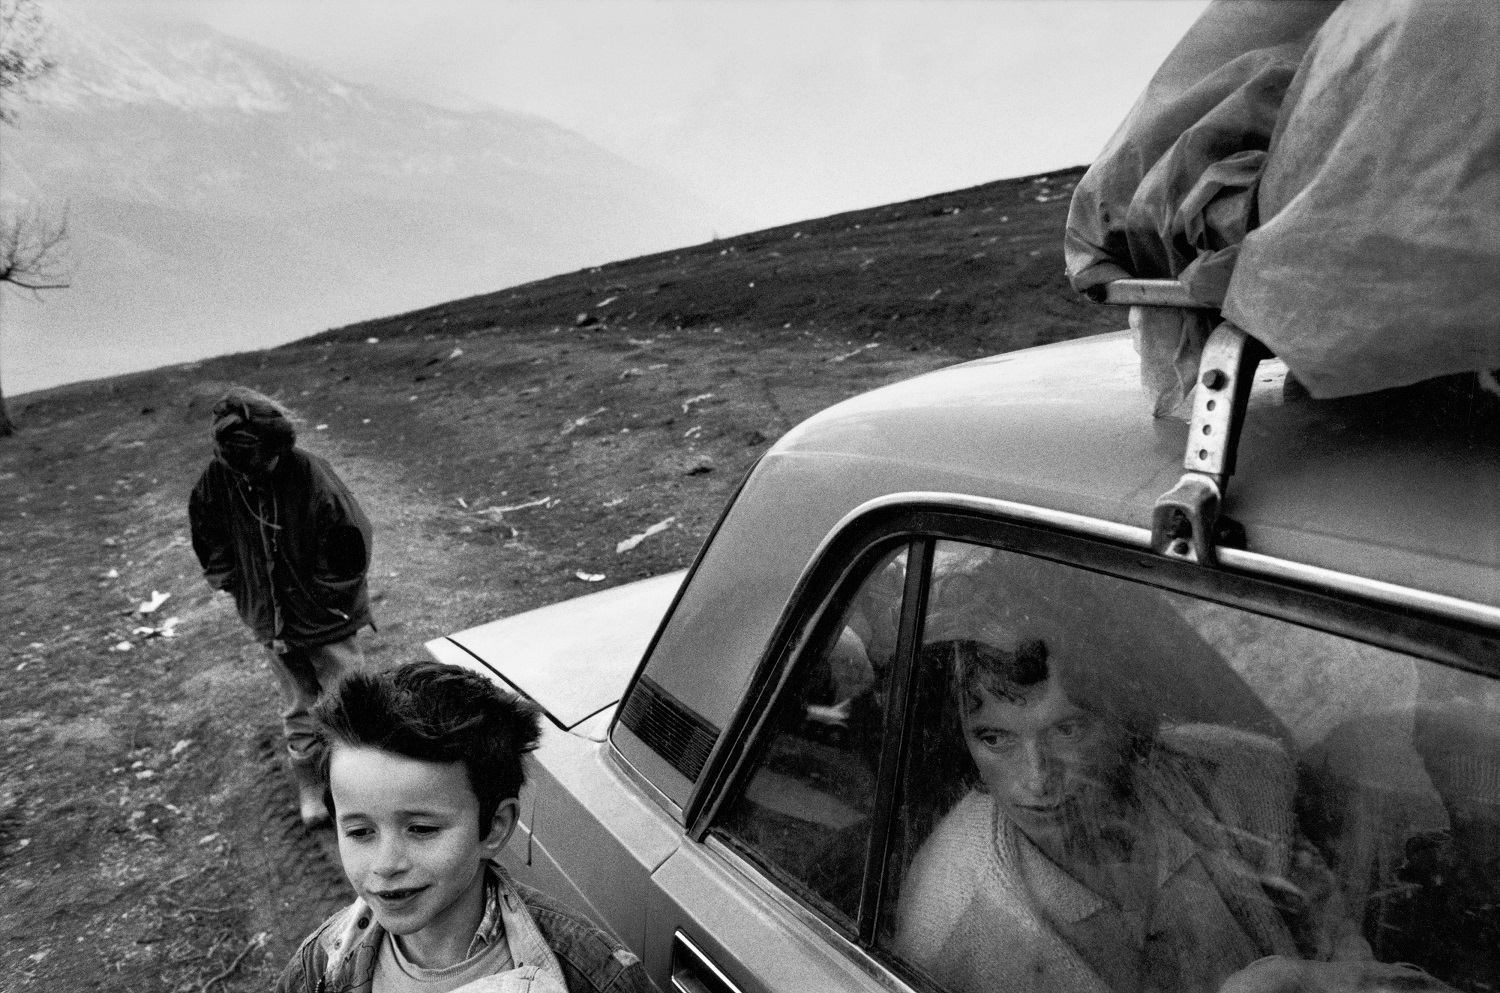 Near the town of Kukes. Refugee family living in a car. Kosovo, Albania, 1999 © Paolo Pellegrin